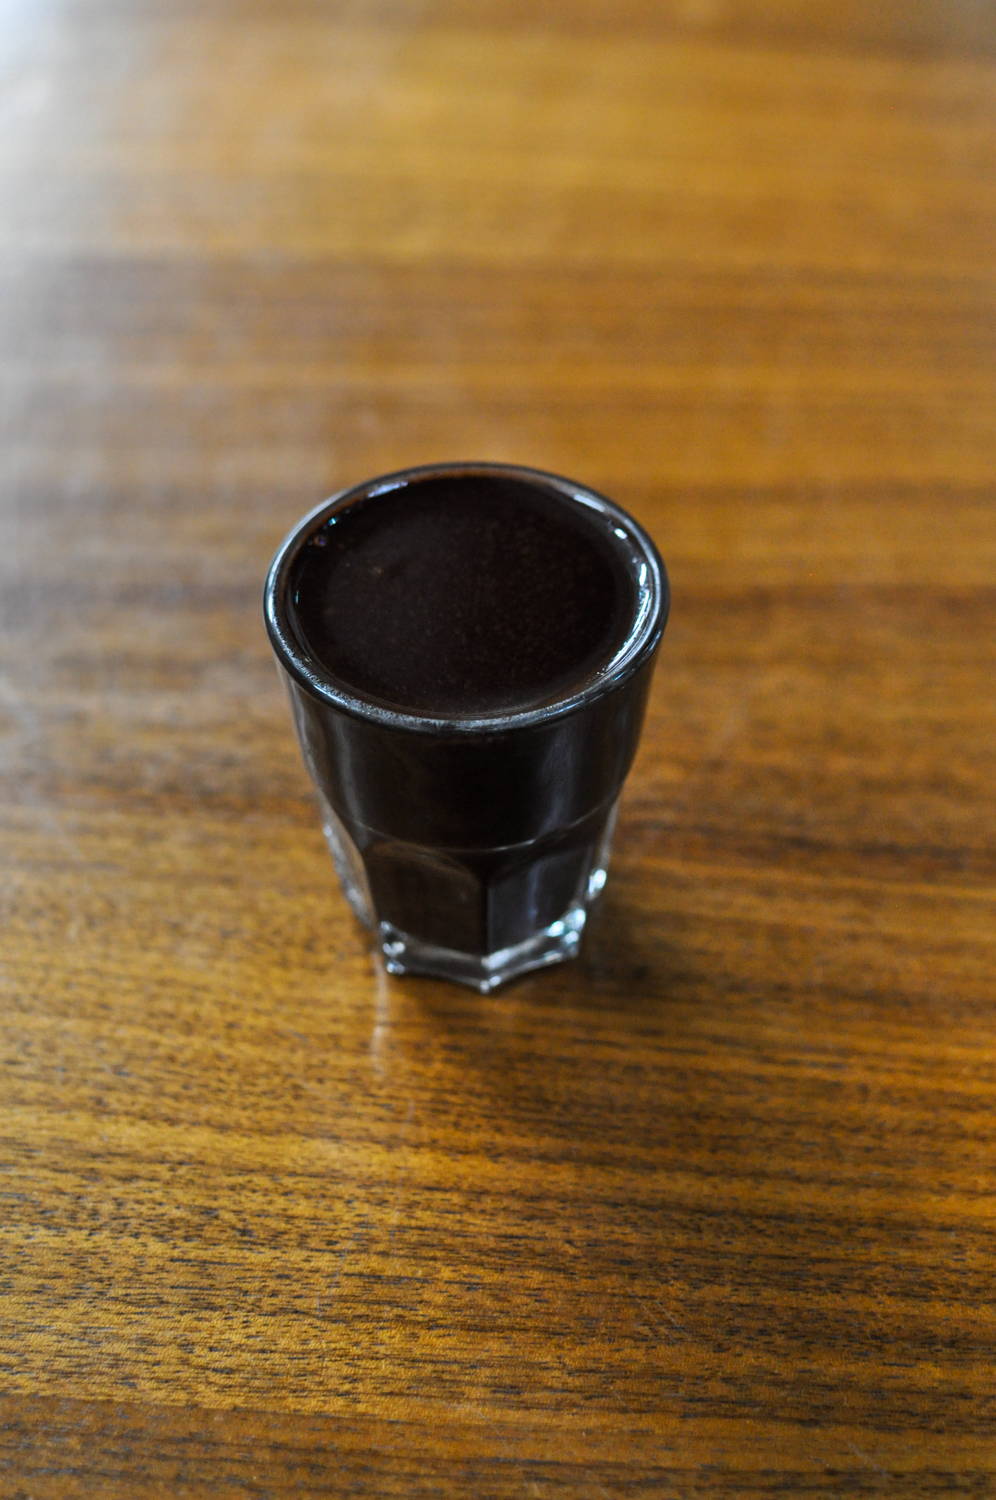 A shot glass full of melted chocolate. This is what dreams are made of.